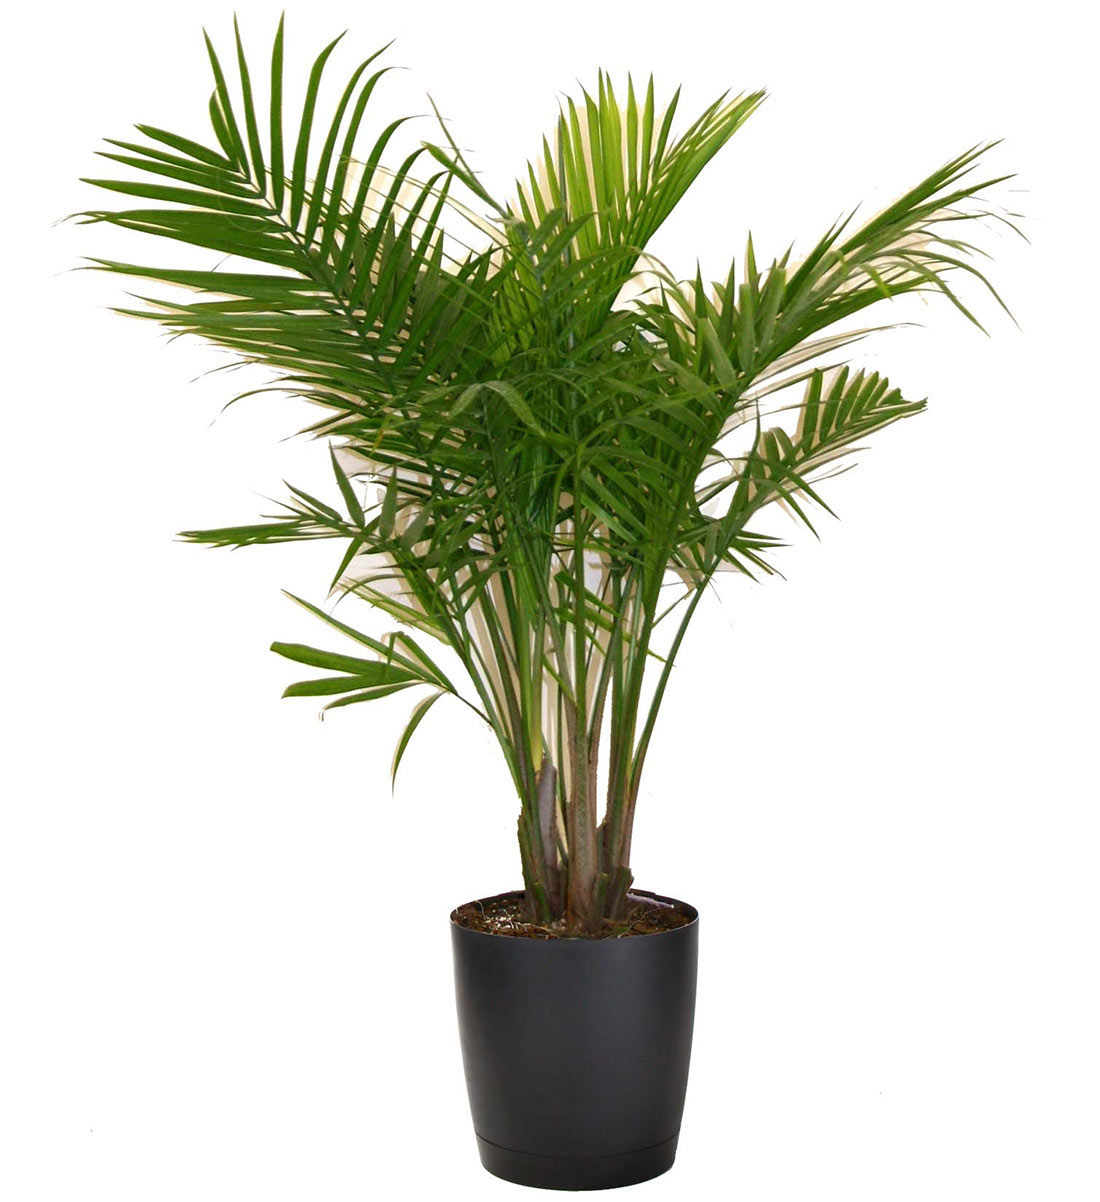 In House Plant Most Popular Houseplants Costa Farms